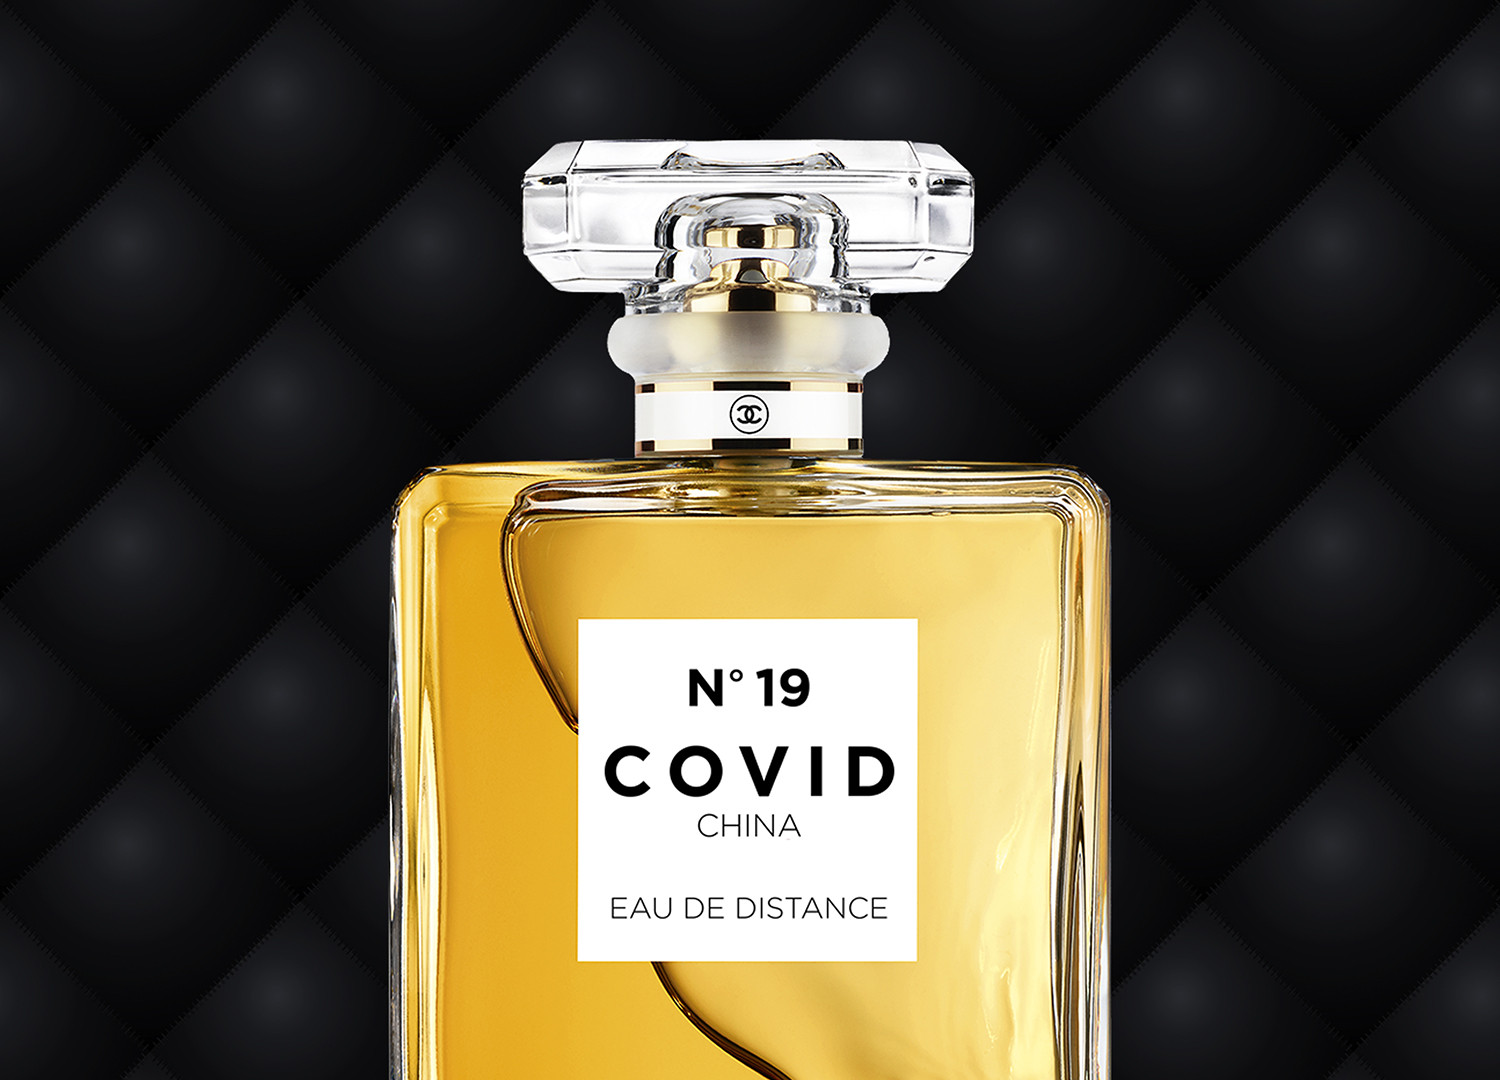 COVID No.19 EAU DE DISTANCE (Black Leather)